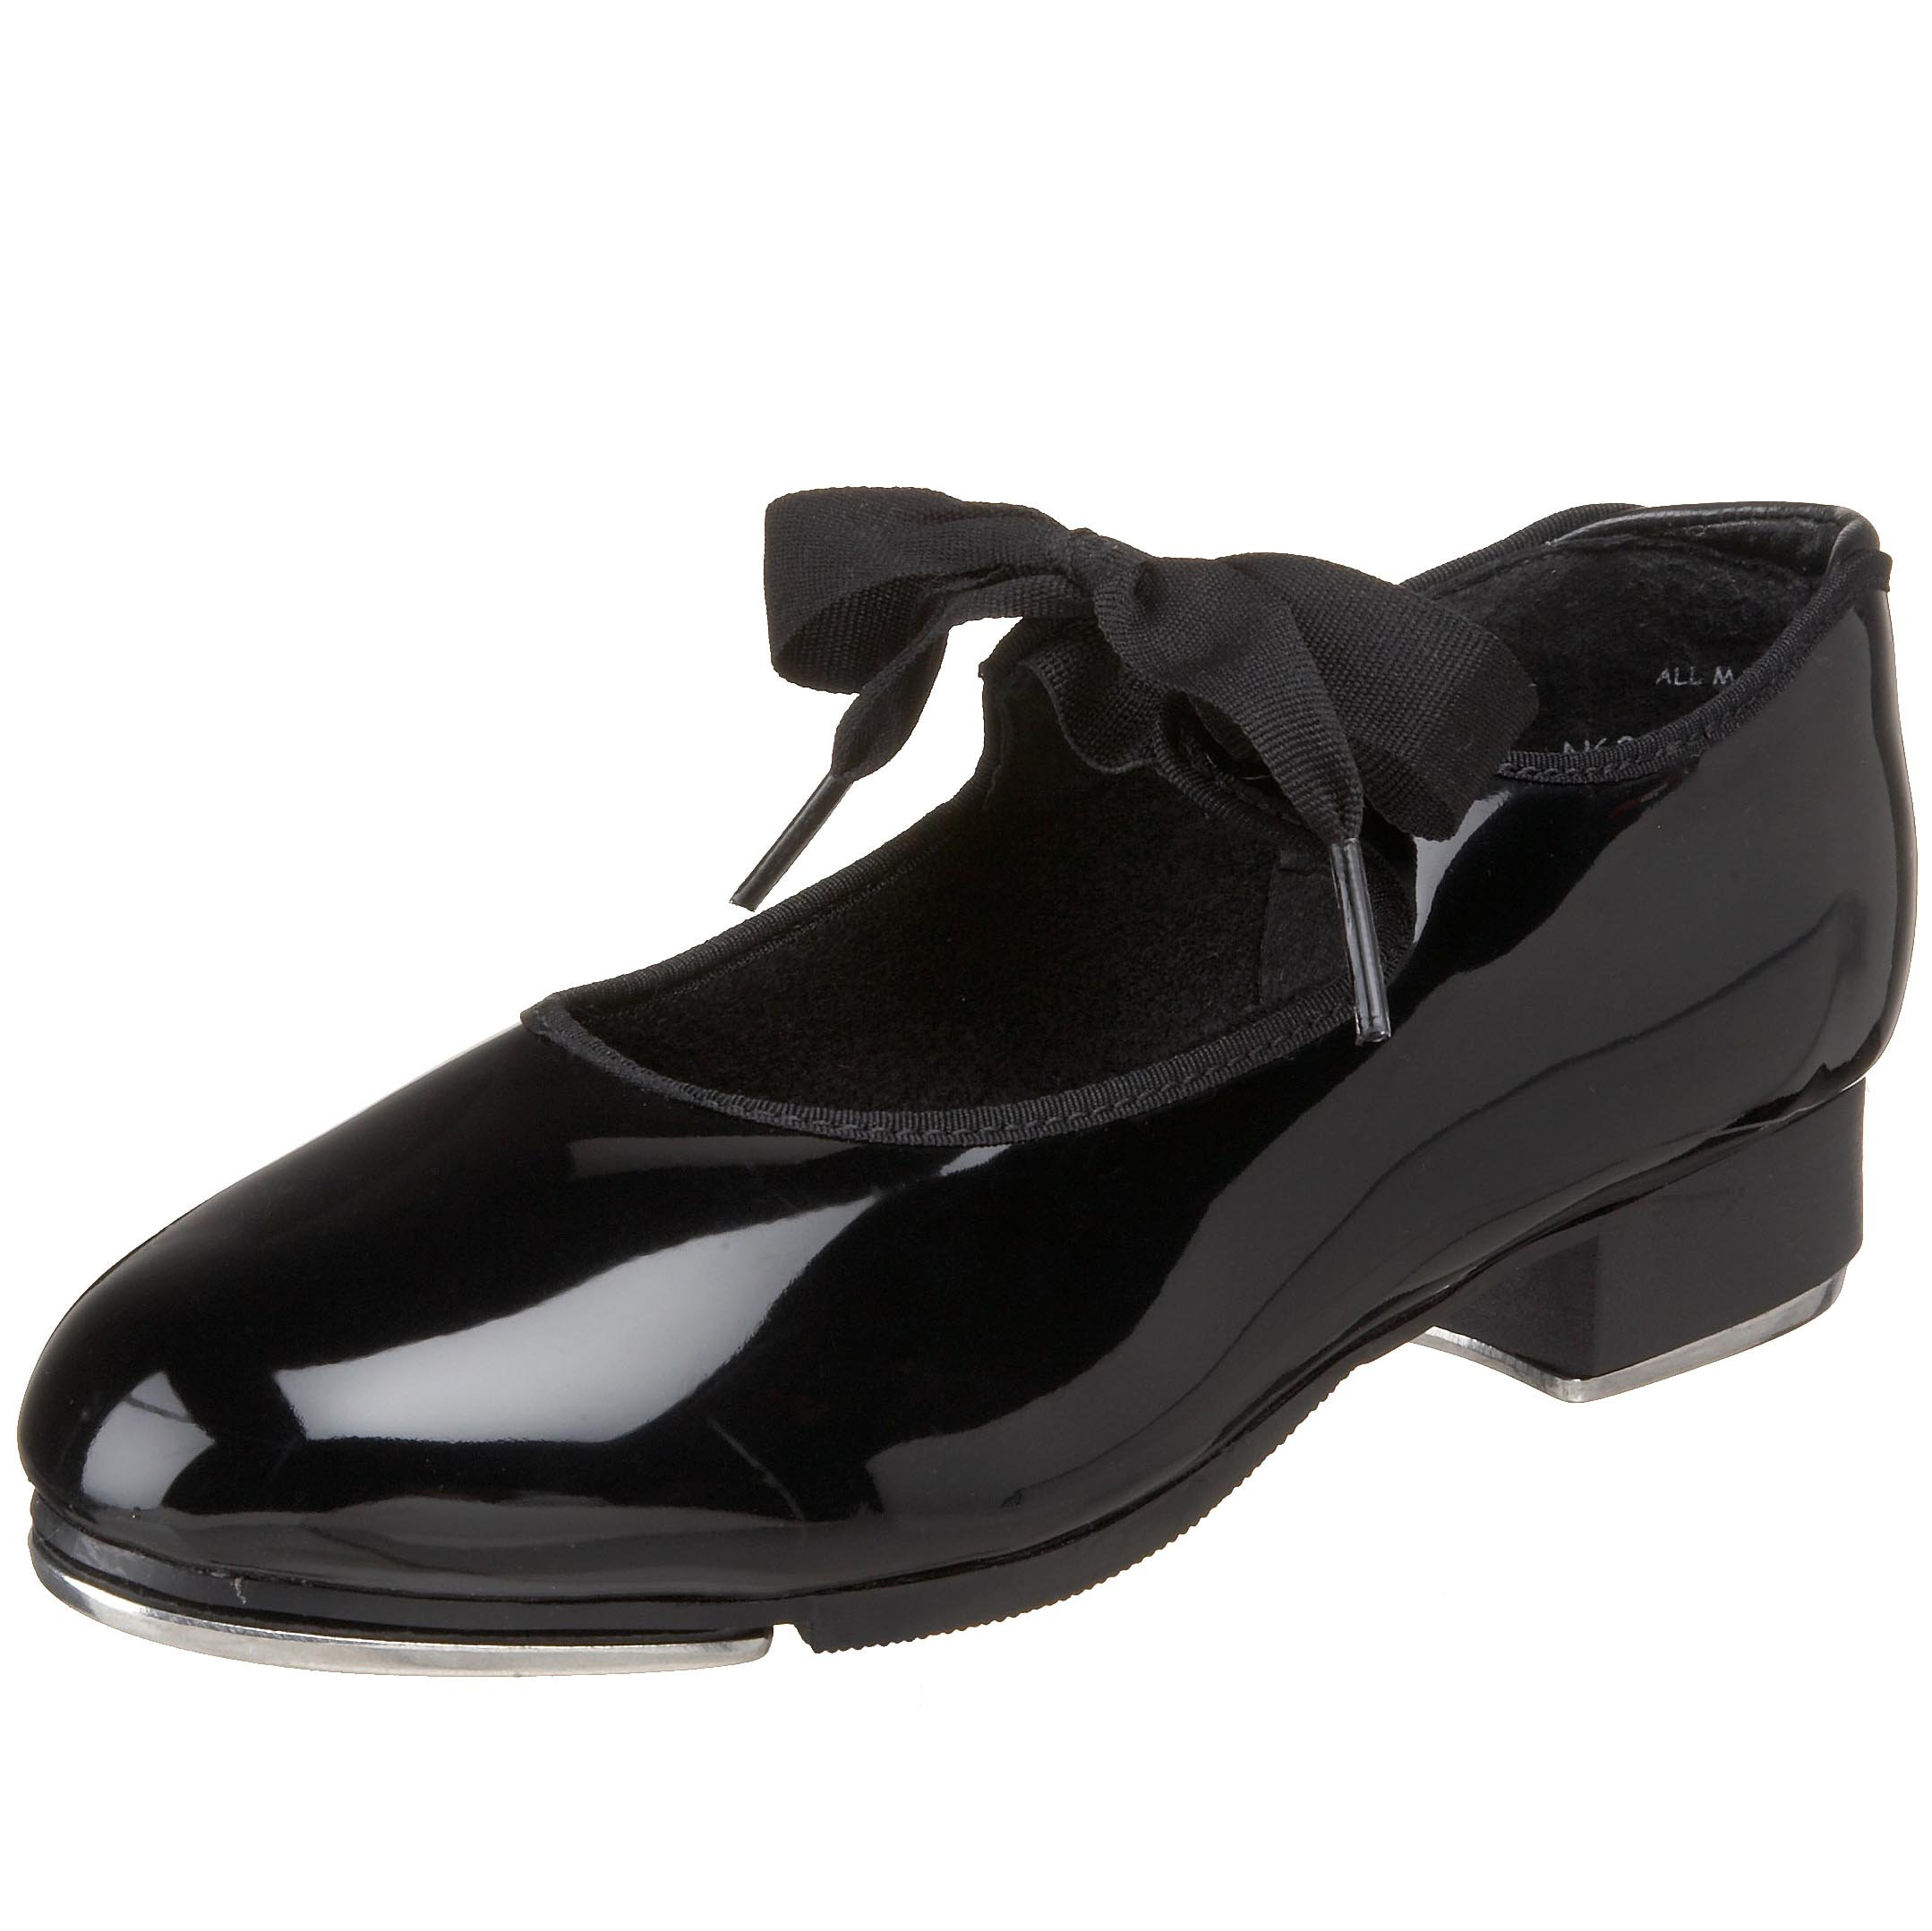 Capezio Women's N625 Jr. Tyette Tap Shoe,Black Patent,7 M US